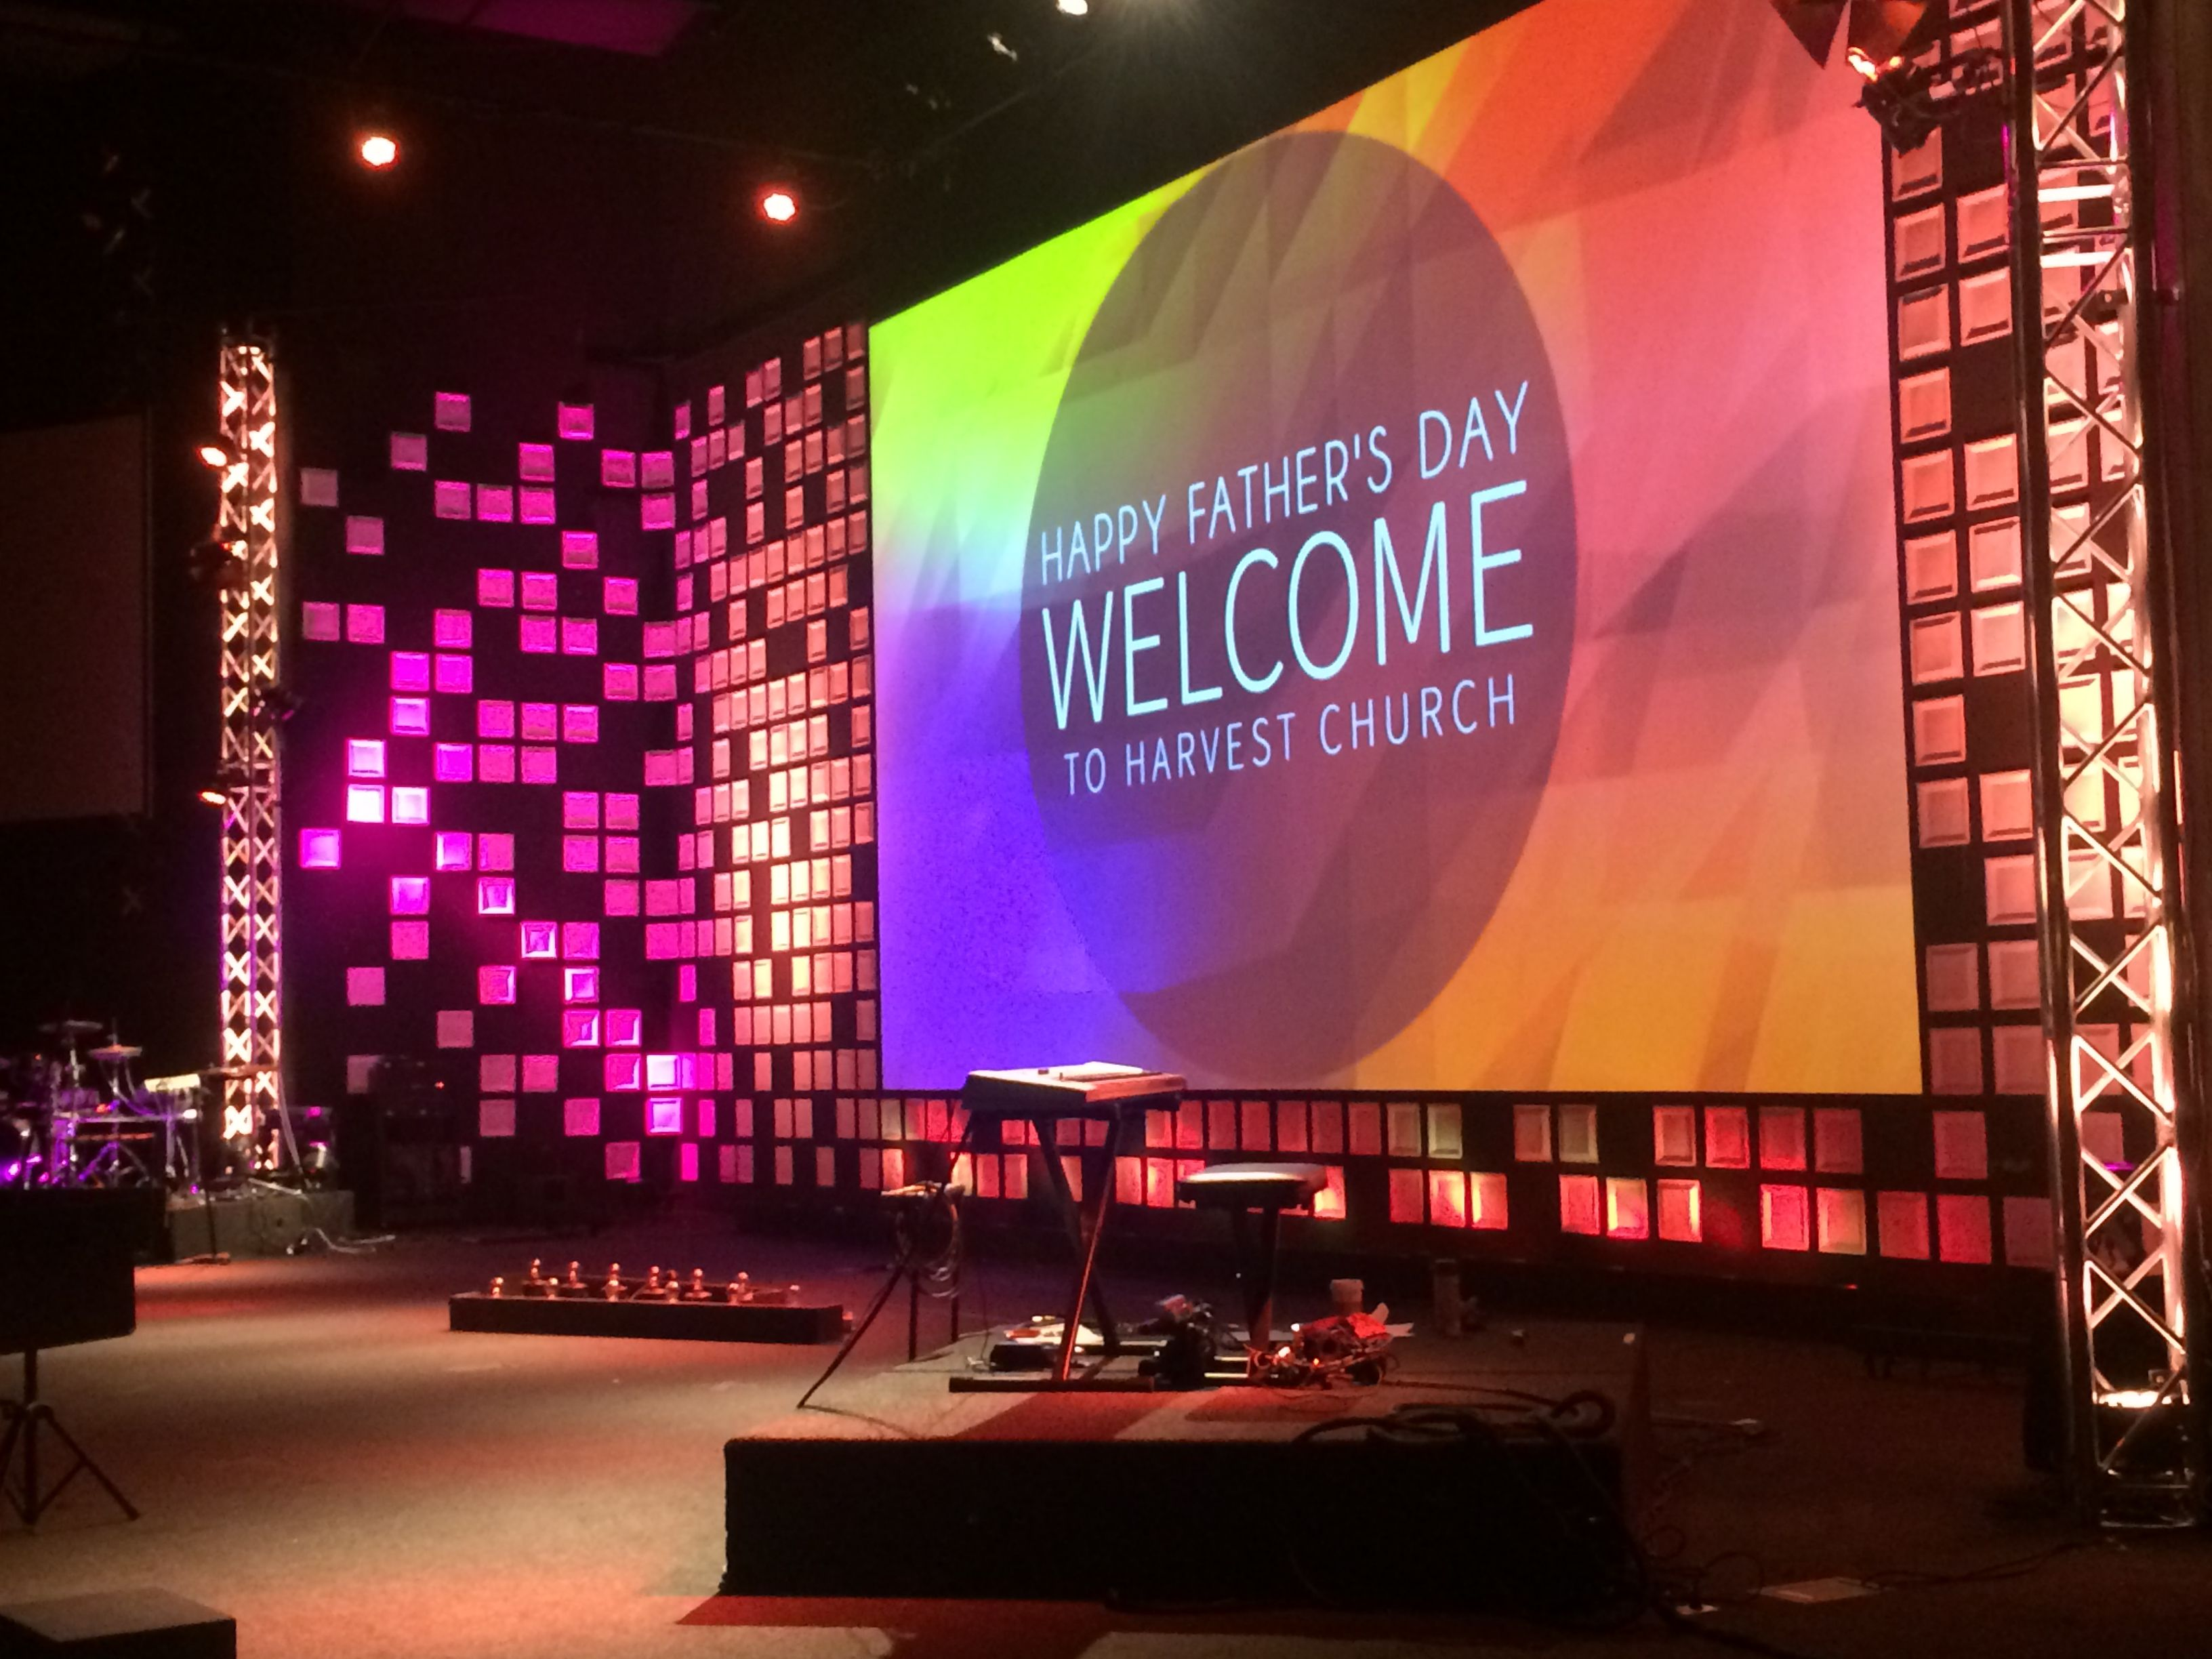 Find This Pin And More On CHURCH STAGE DESIGN IDEAS By NparkerWCH.